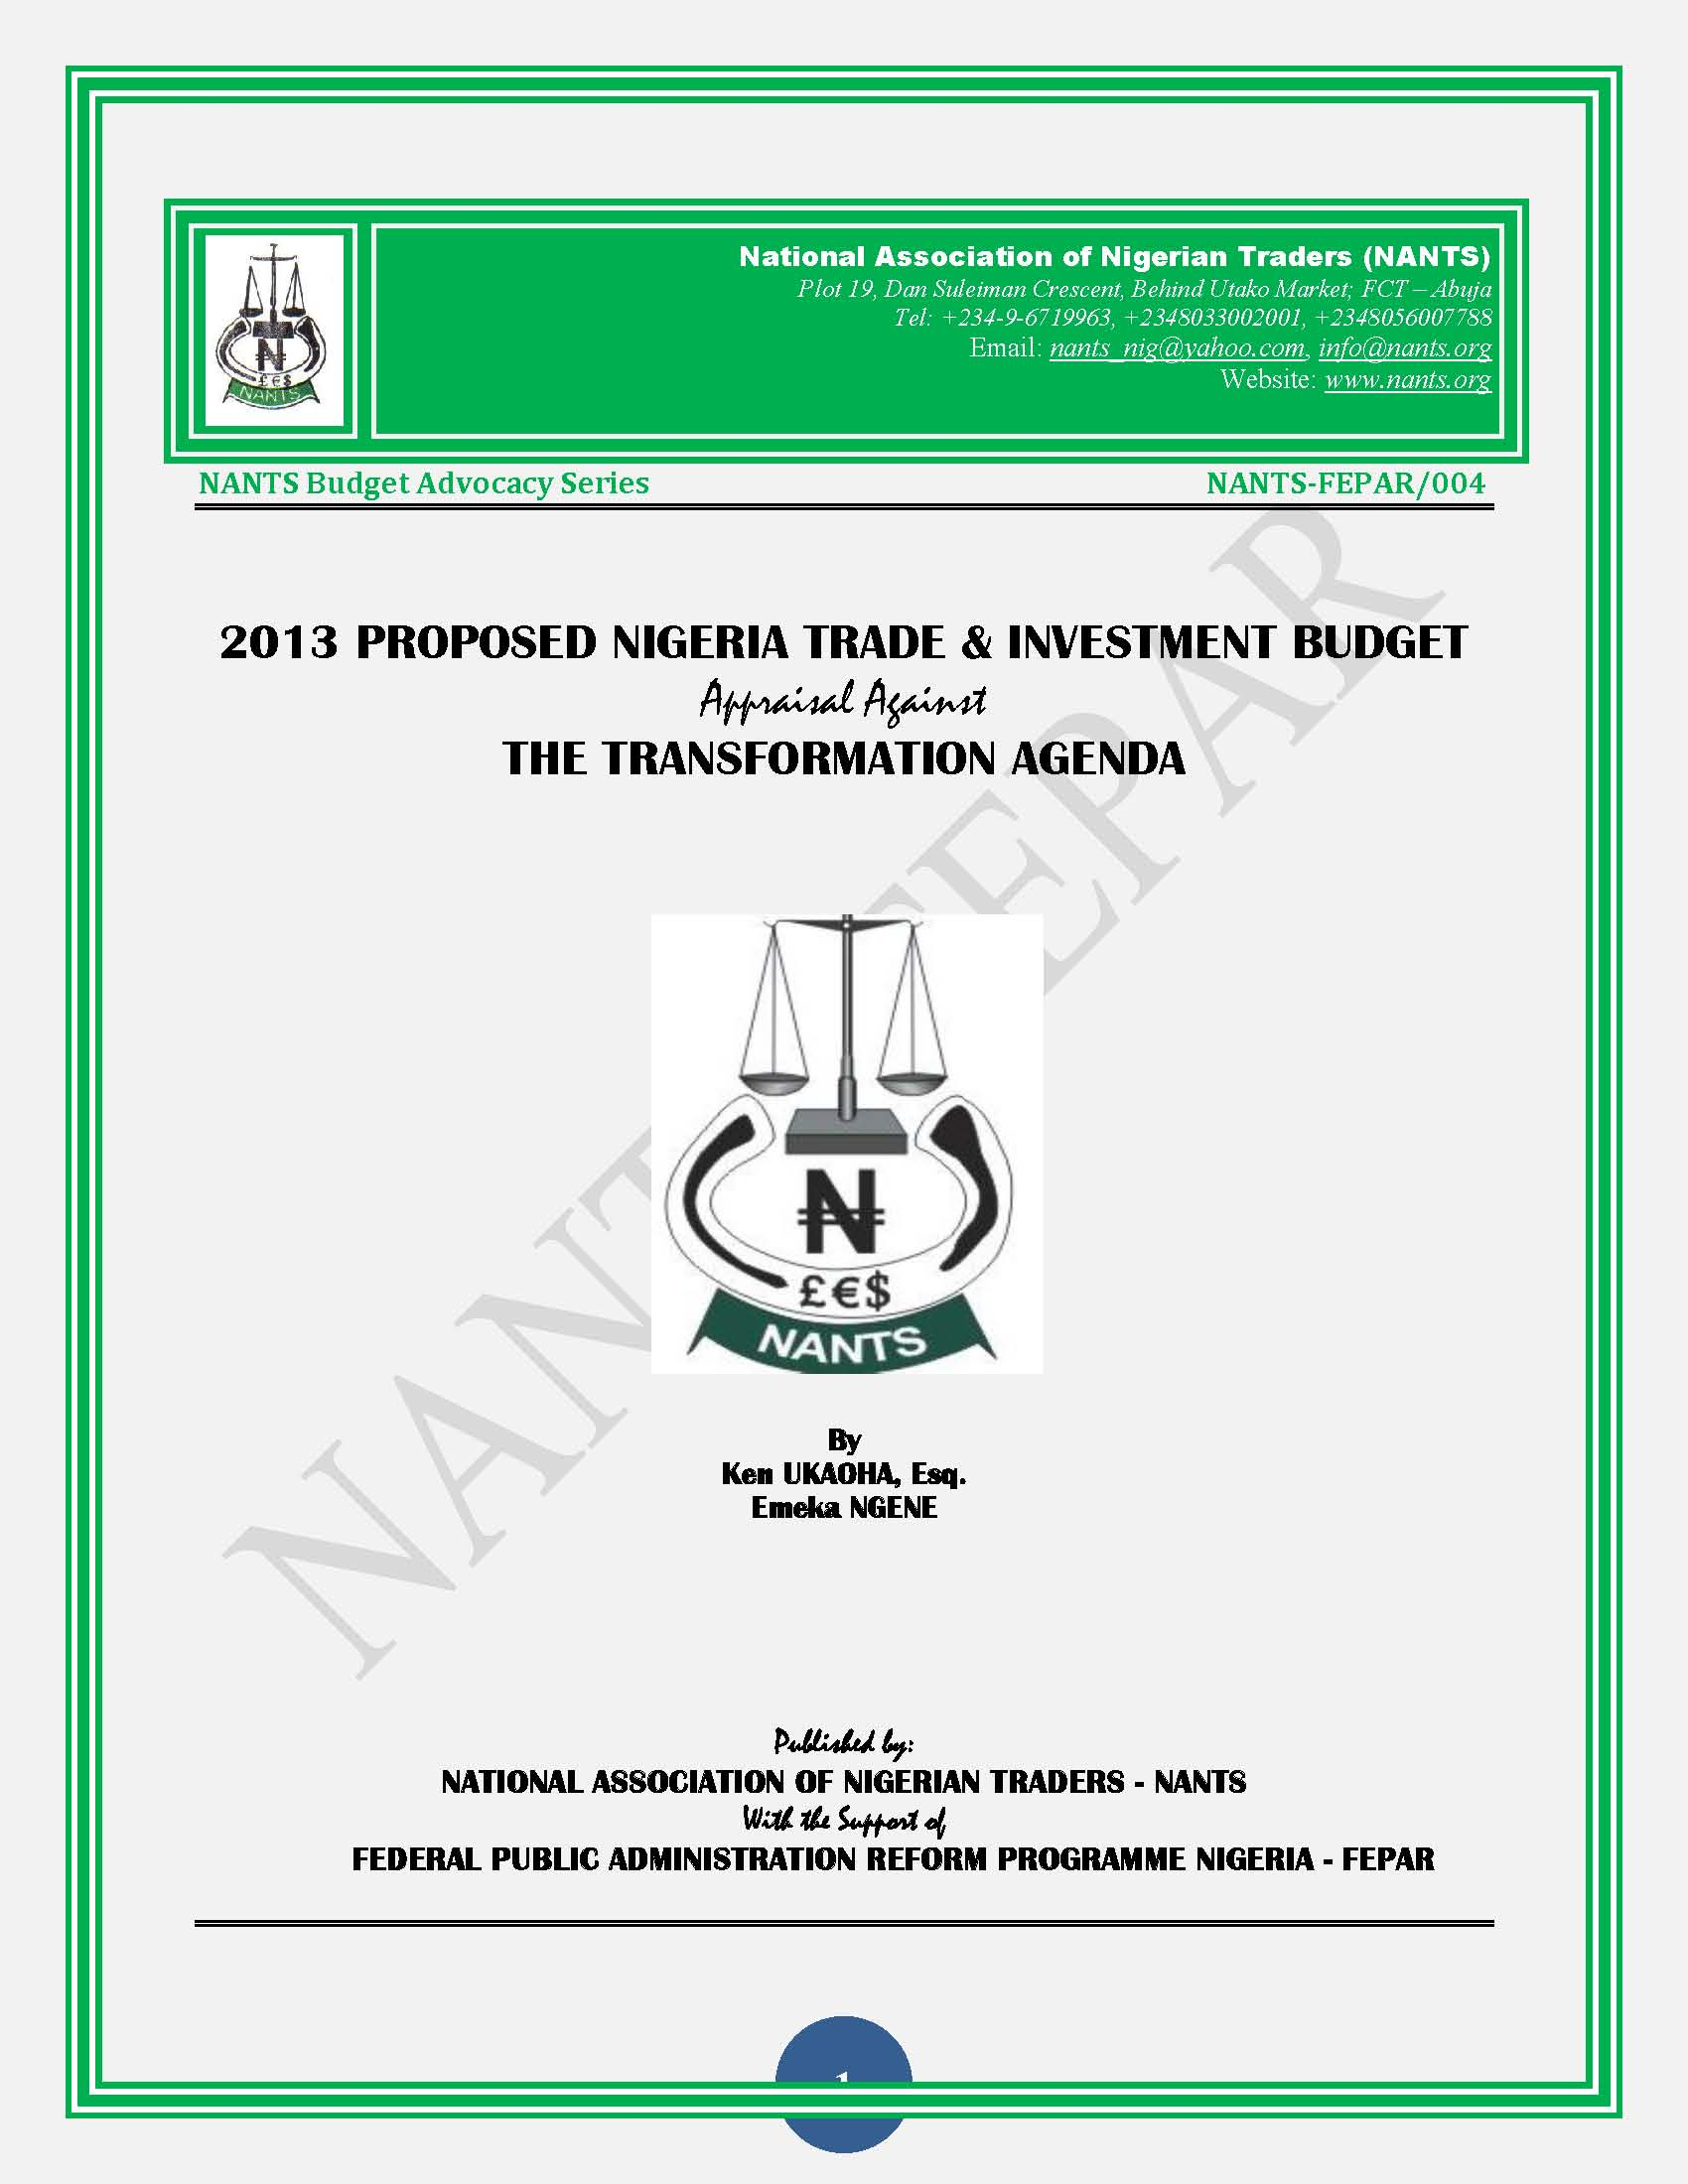 NANTS (Nigeria) : Review of the Proposed 2013 Agriculture Budget and Trade & Investment Budget